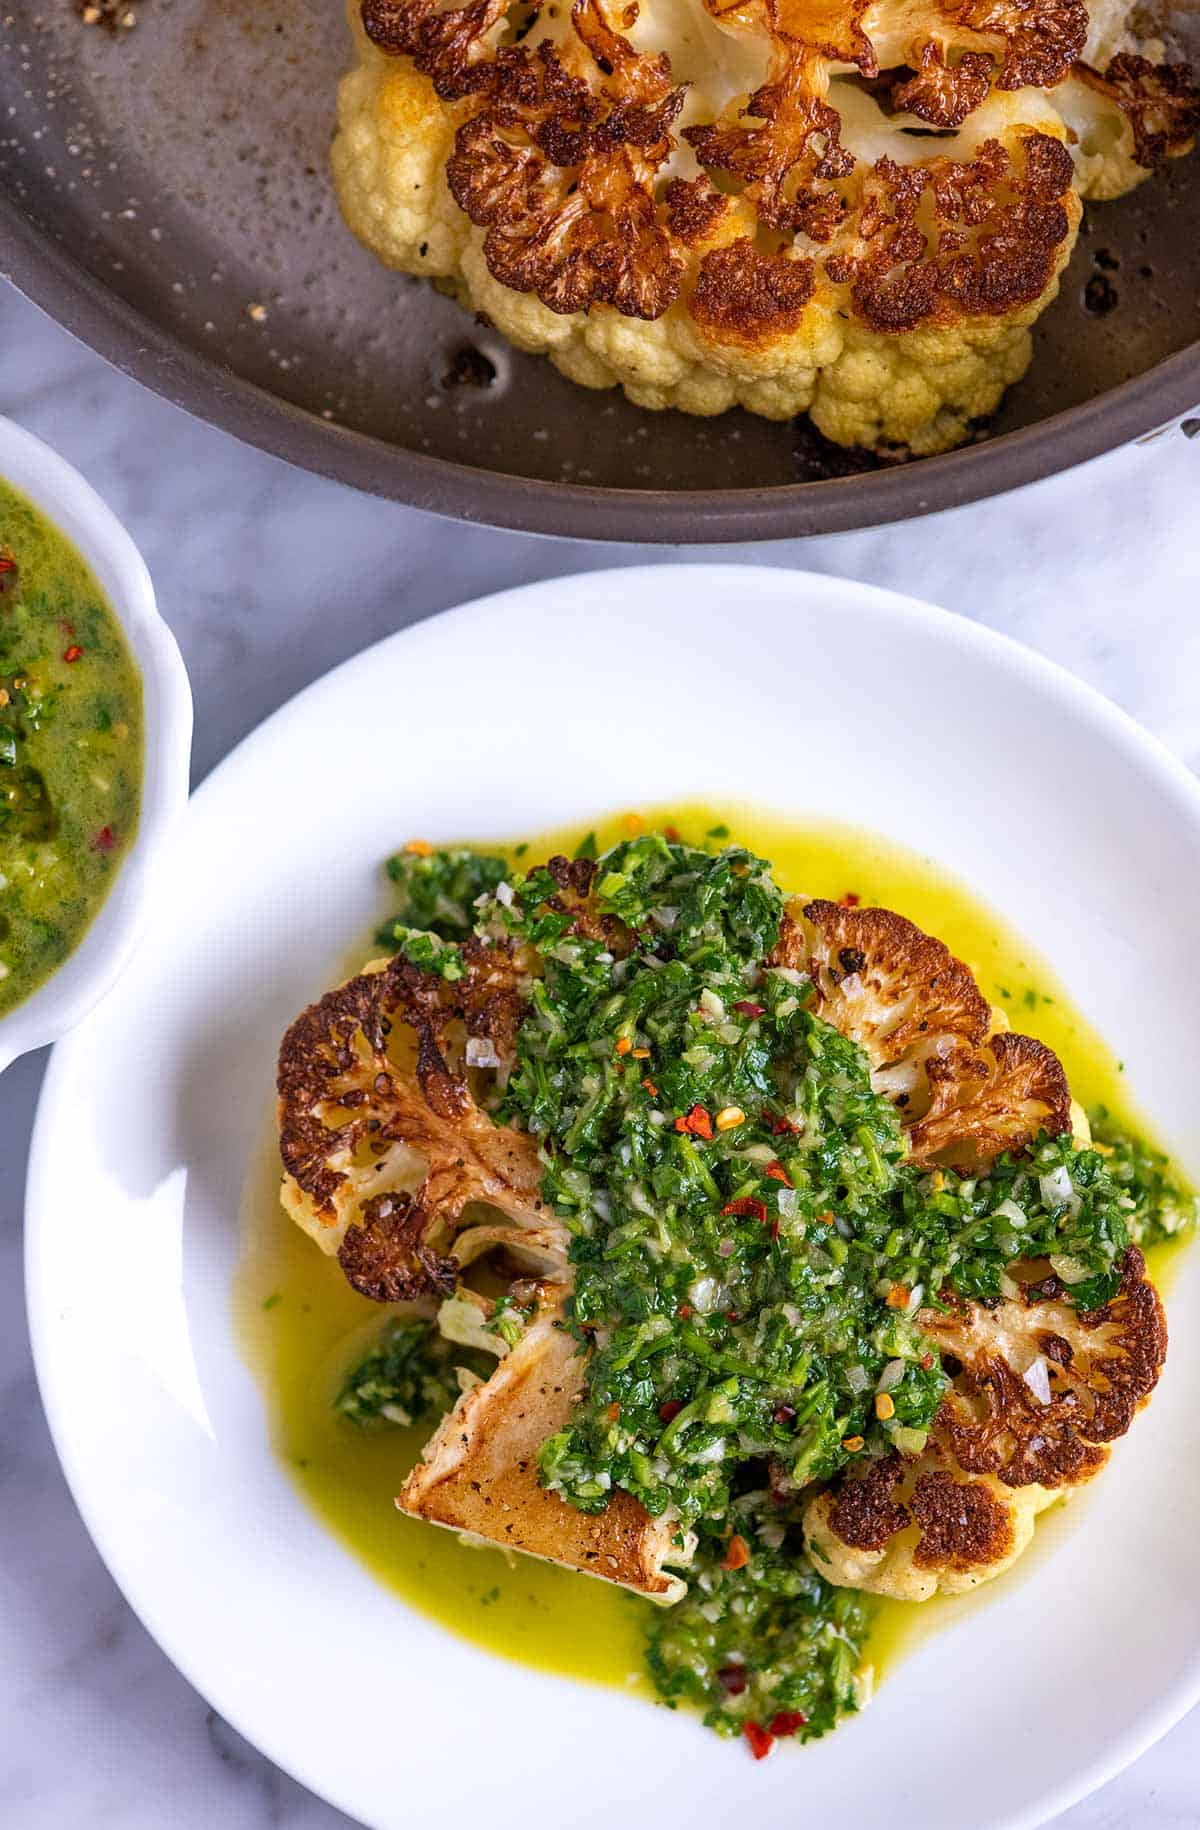 Roasted cauliflower steaks with chimichurri sauce spooned over the top